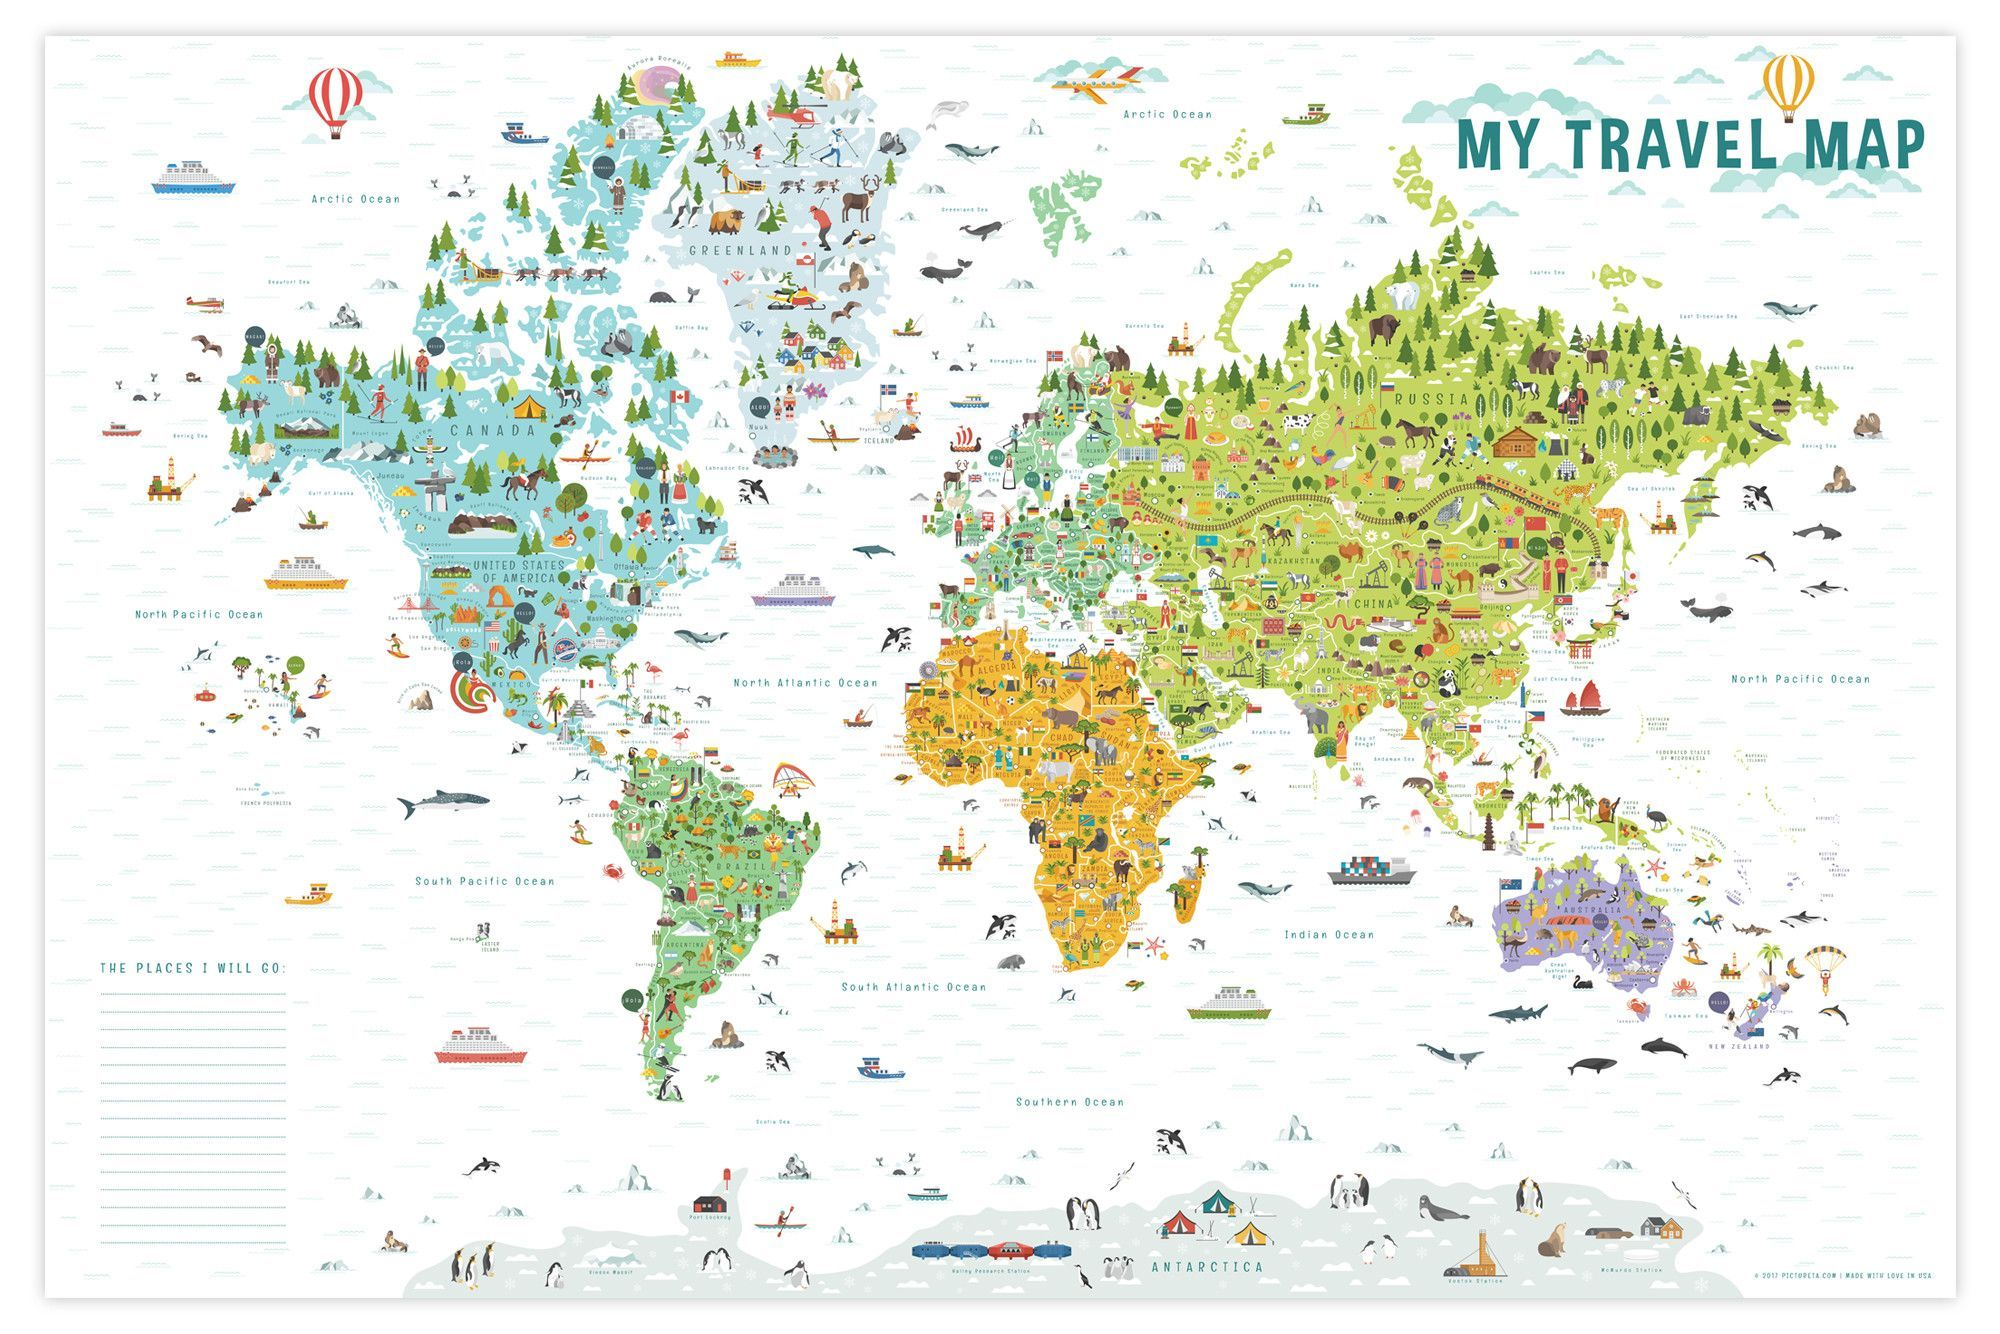 Interactive world map for kids laminated poster kids wall decor my travel map interactive travel world map for kids geography for kids world map with countries kids room decor unique gifts for kids gumiabroncs Image collections